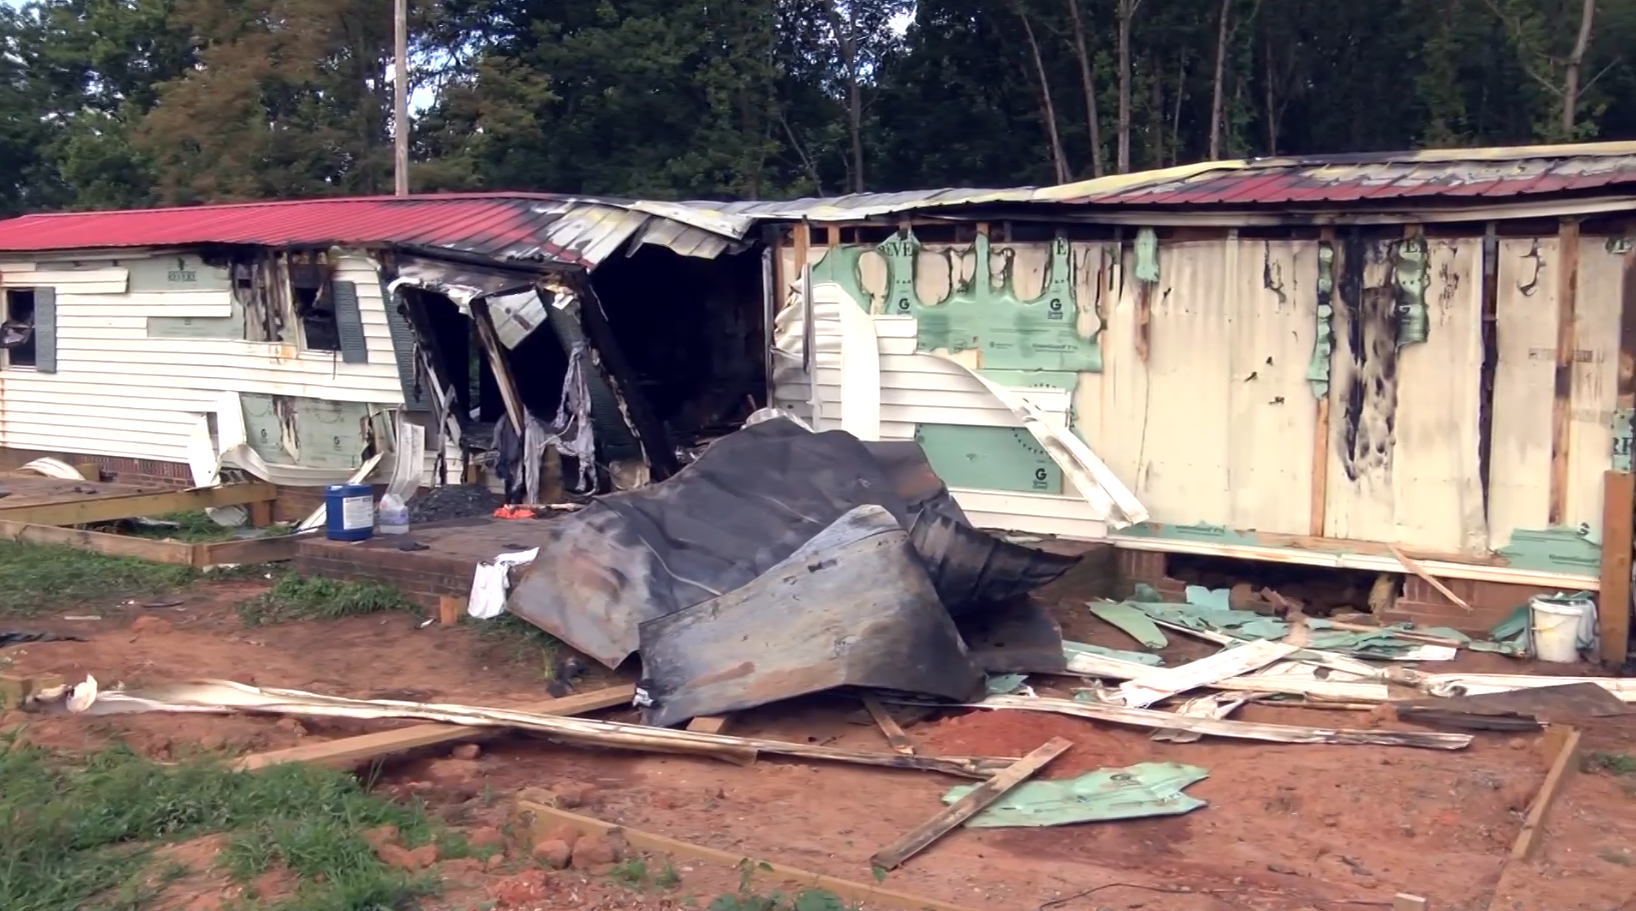 Scene of deadly fire in Alexander County, NC. (Courtesy of WBTV)